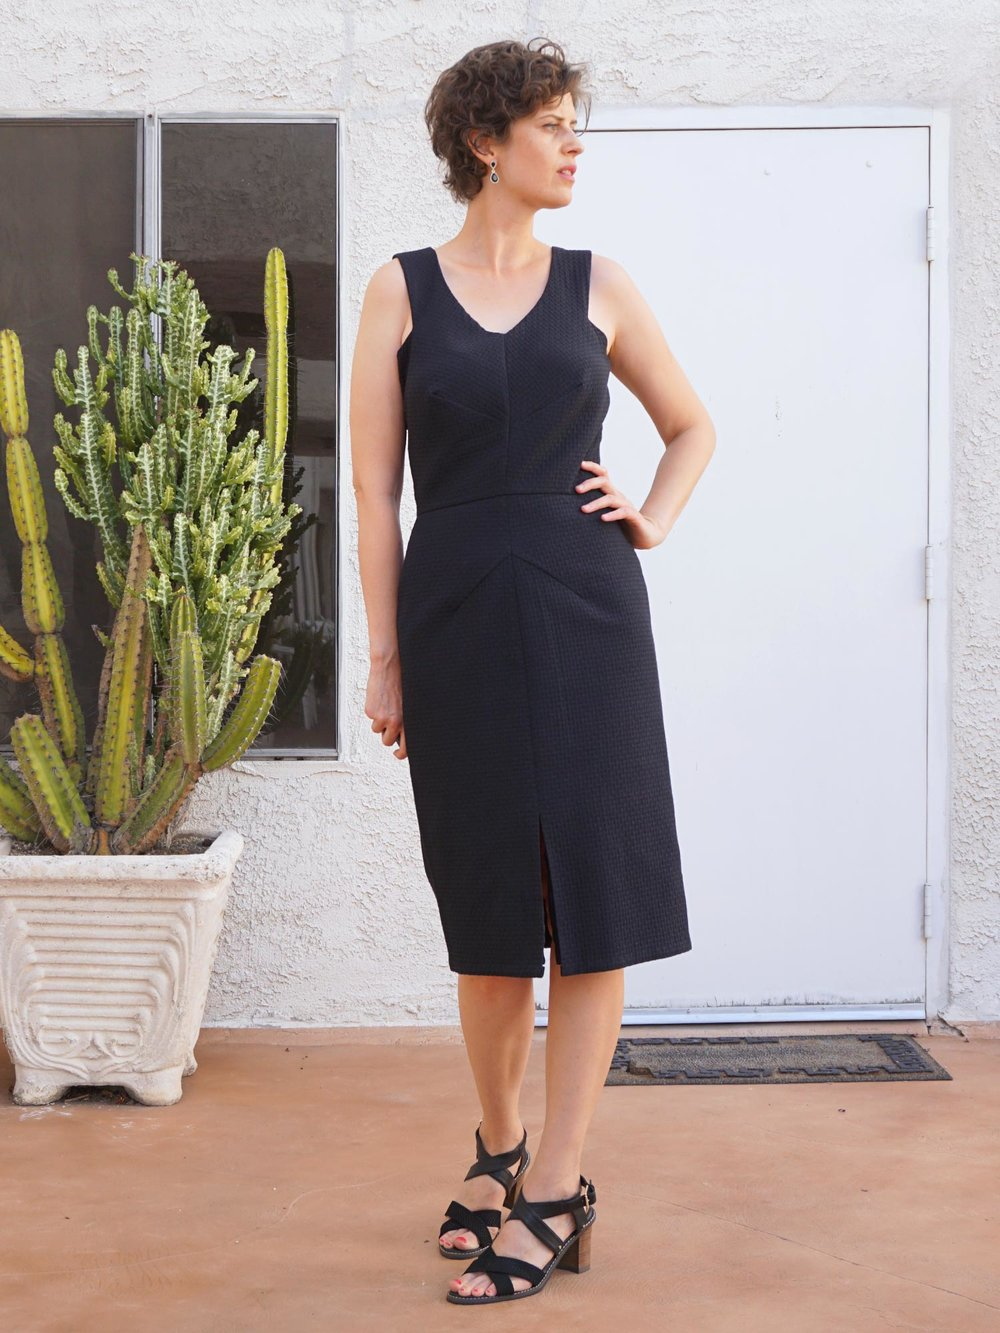 DIY Sheath Dress – Review of the Sophia Dress by By Hand London | Sew DIY